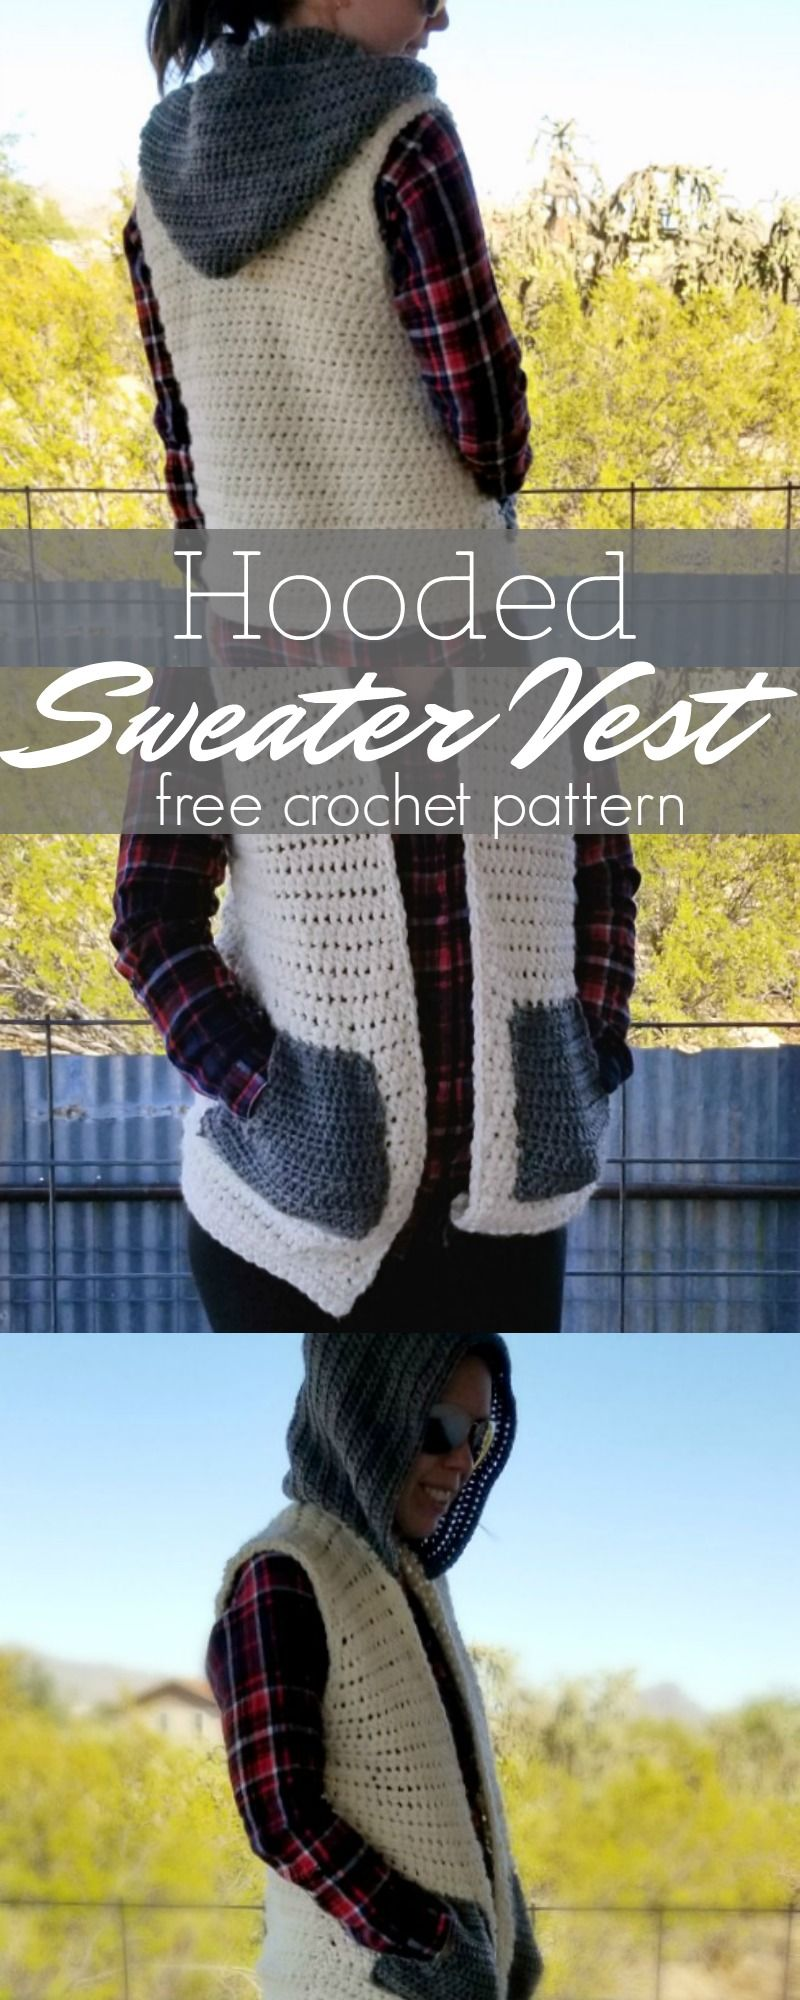 Crochet Hooded Sweater Vest | Pinterest | Tejido, Patrones de suéter ...